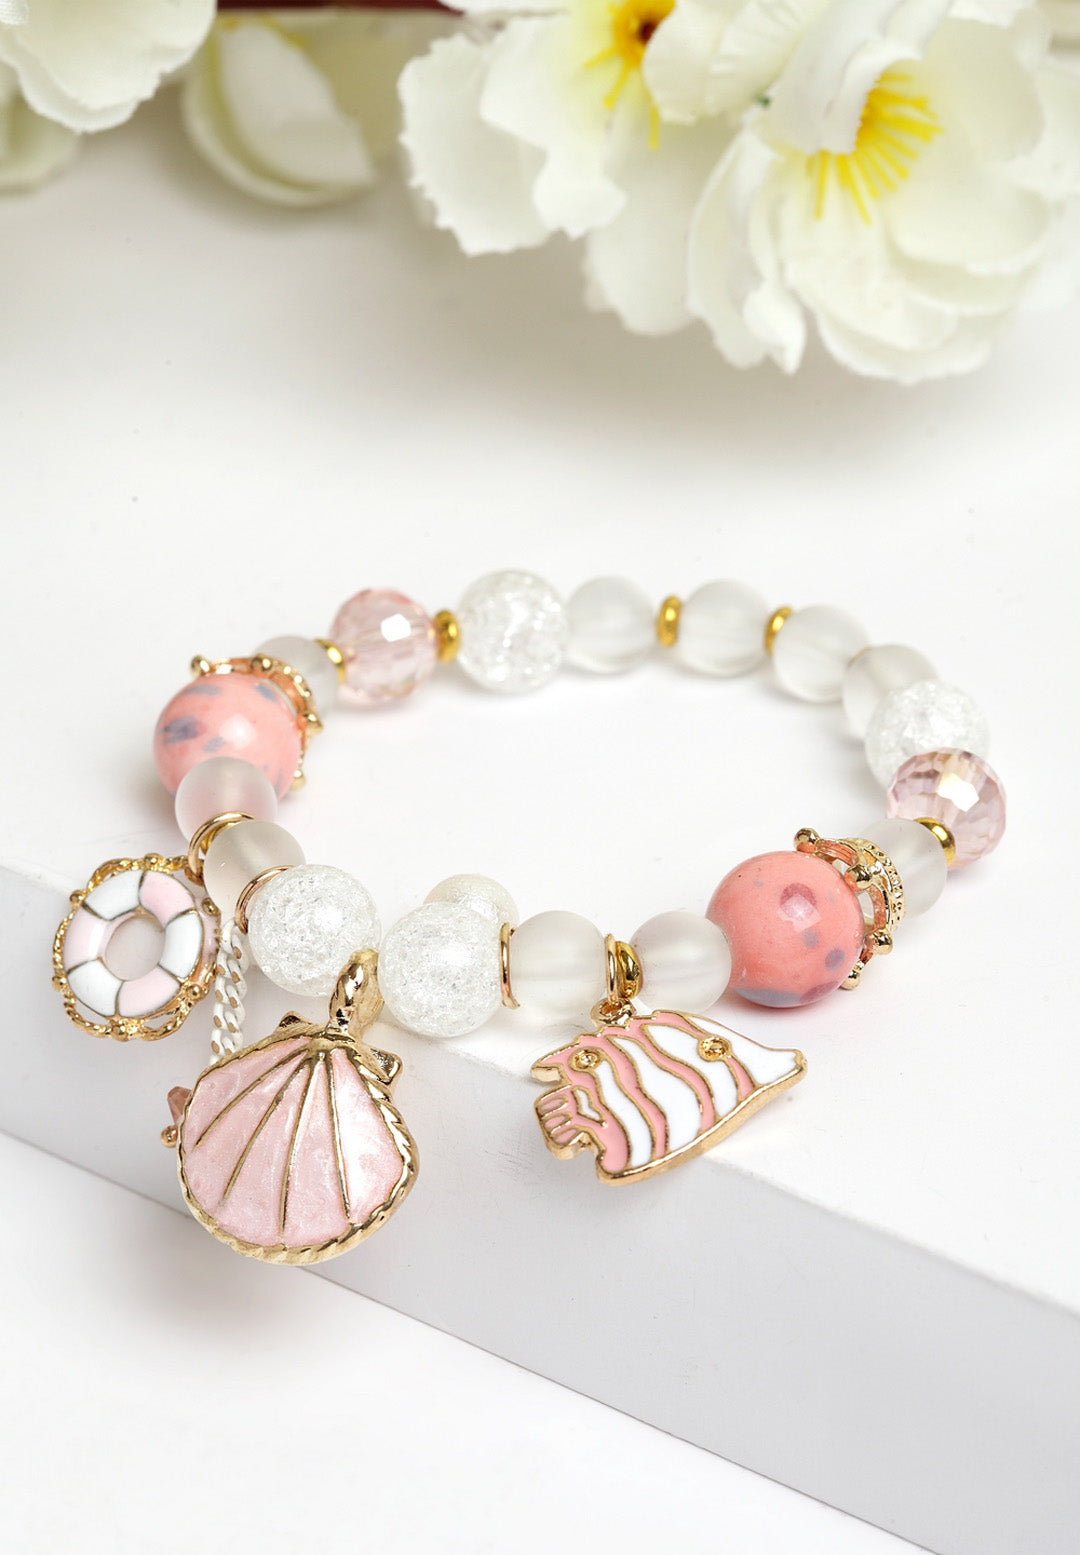 Avant-Garde Paris Boho Shell Seed Bead Natural Stone Crystal Slap Bracelet